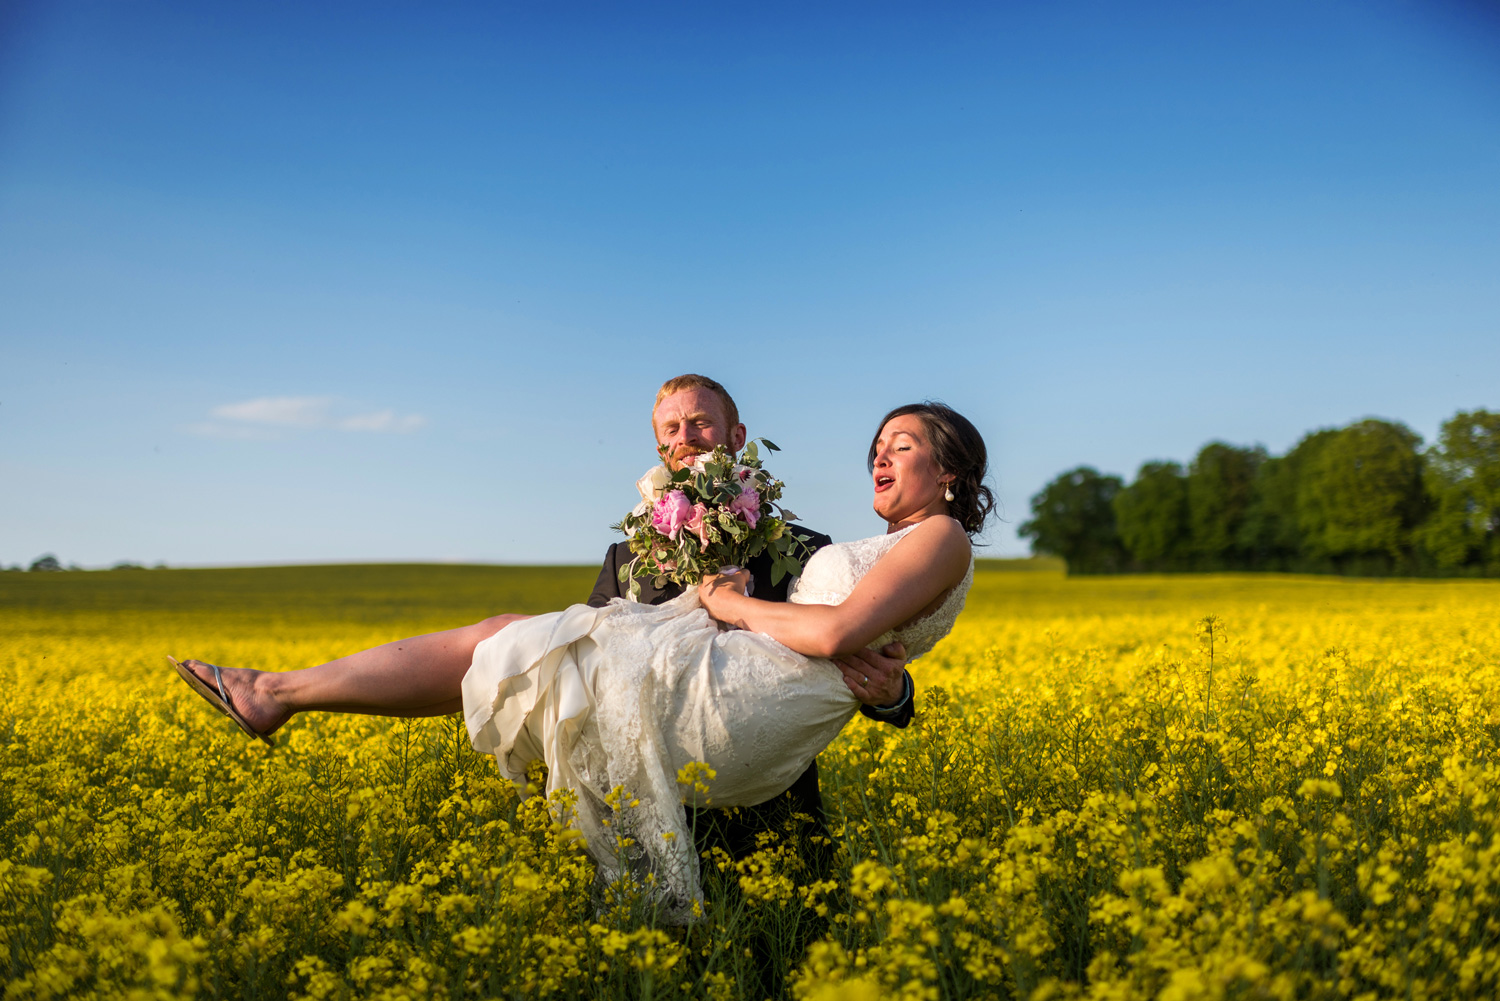 groom carrying bride out of field